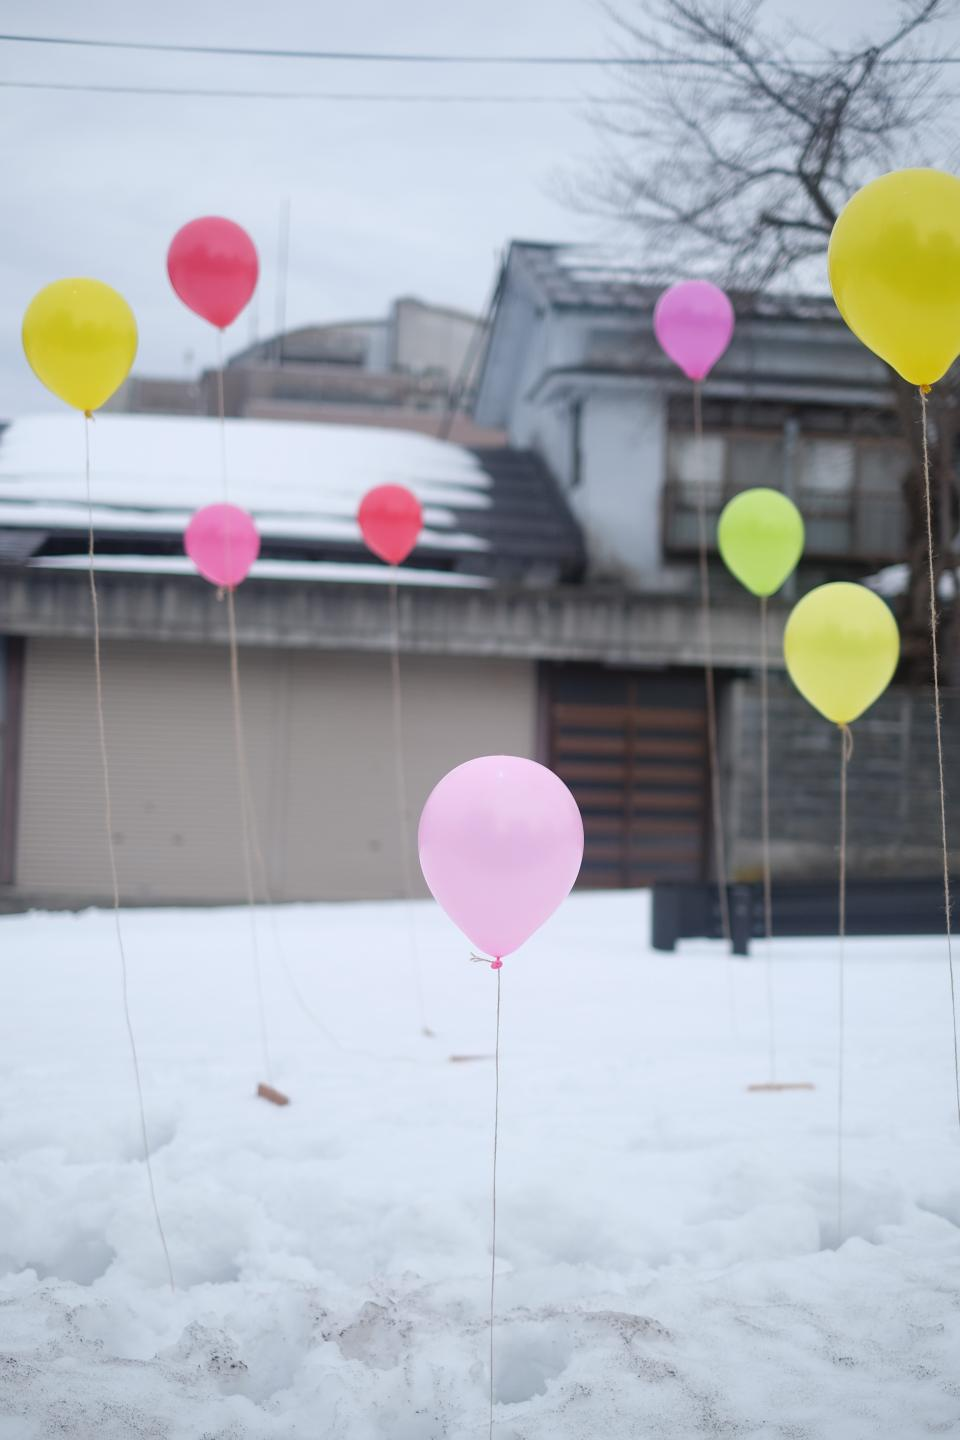 balloons party snow driveway house winter cold home birthday